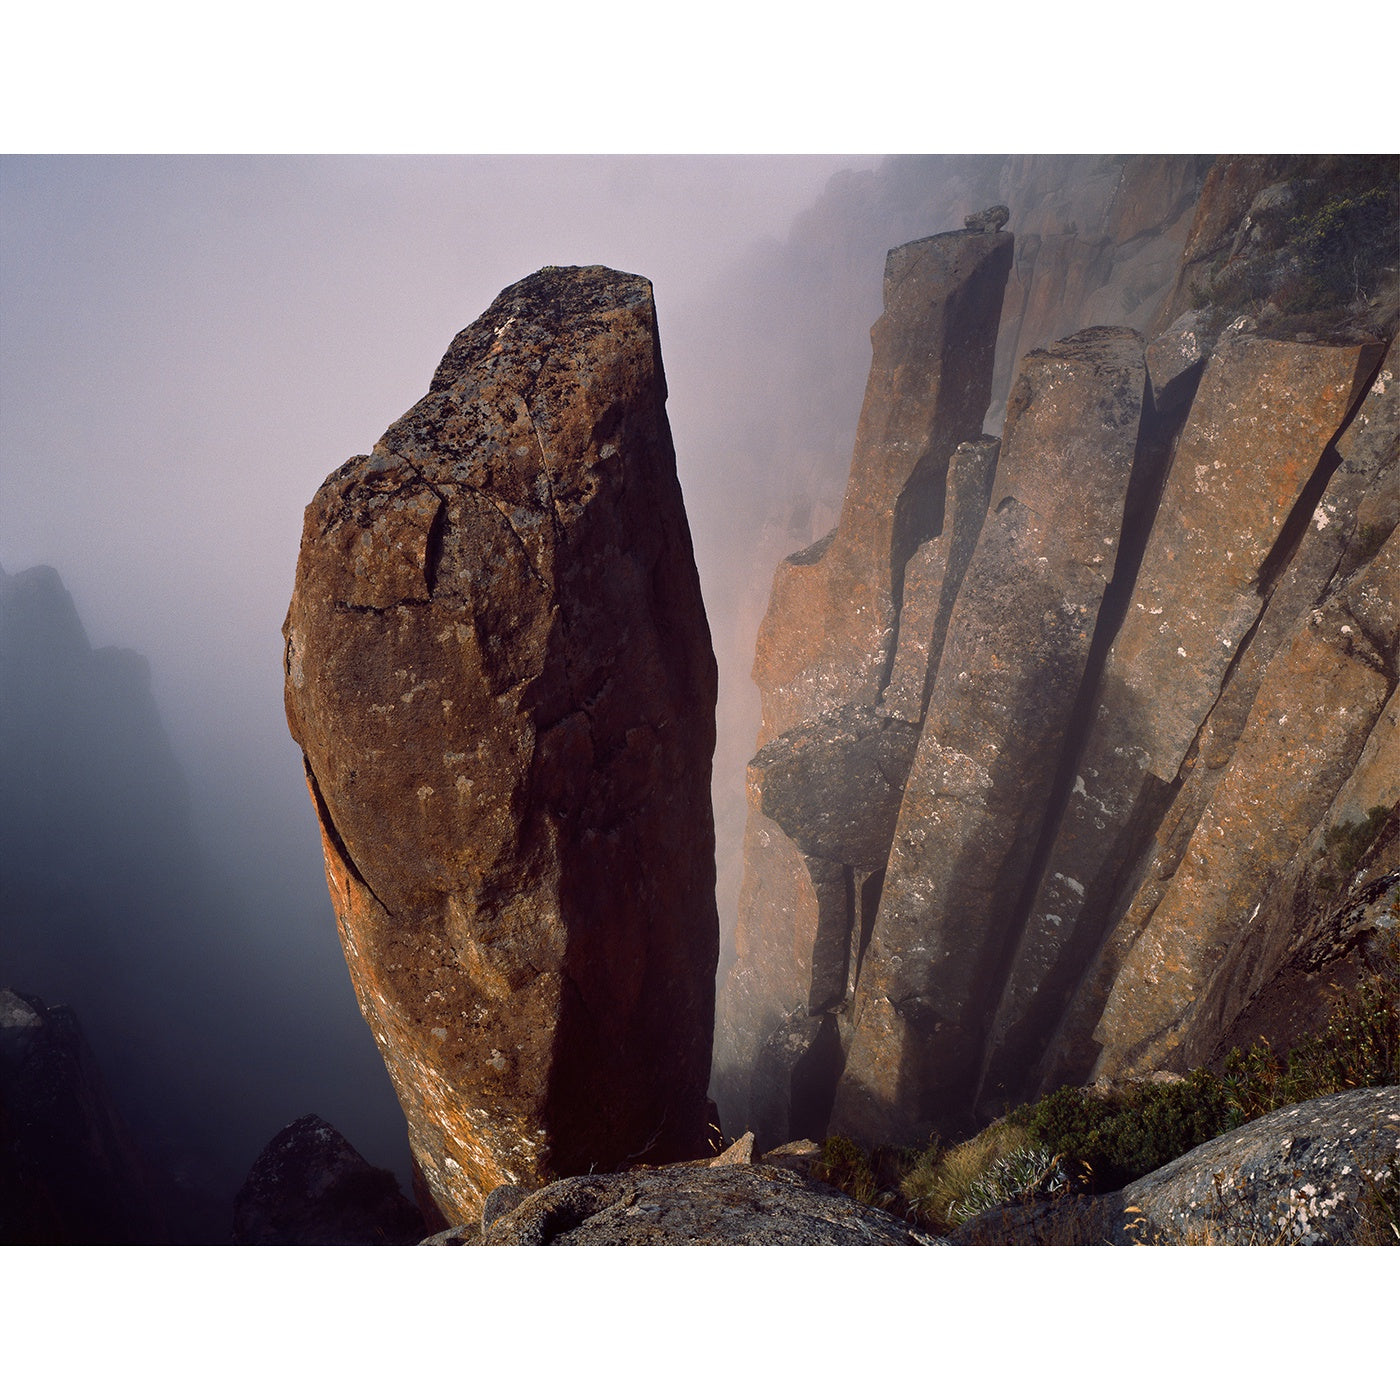 Peter Dombrovskis - Dolerite columns, Organ Pipes, kunanyi/Mount Wellington